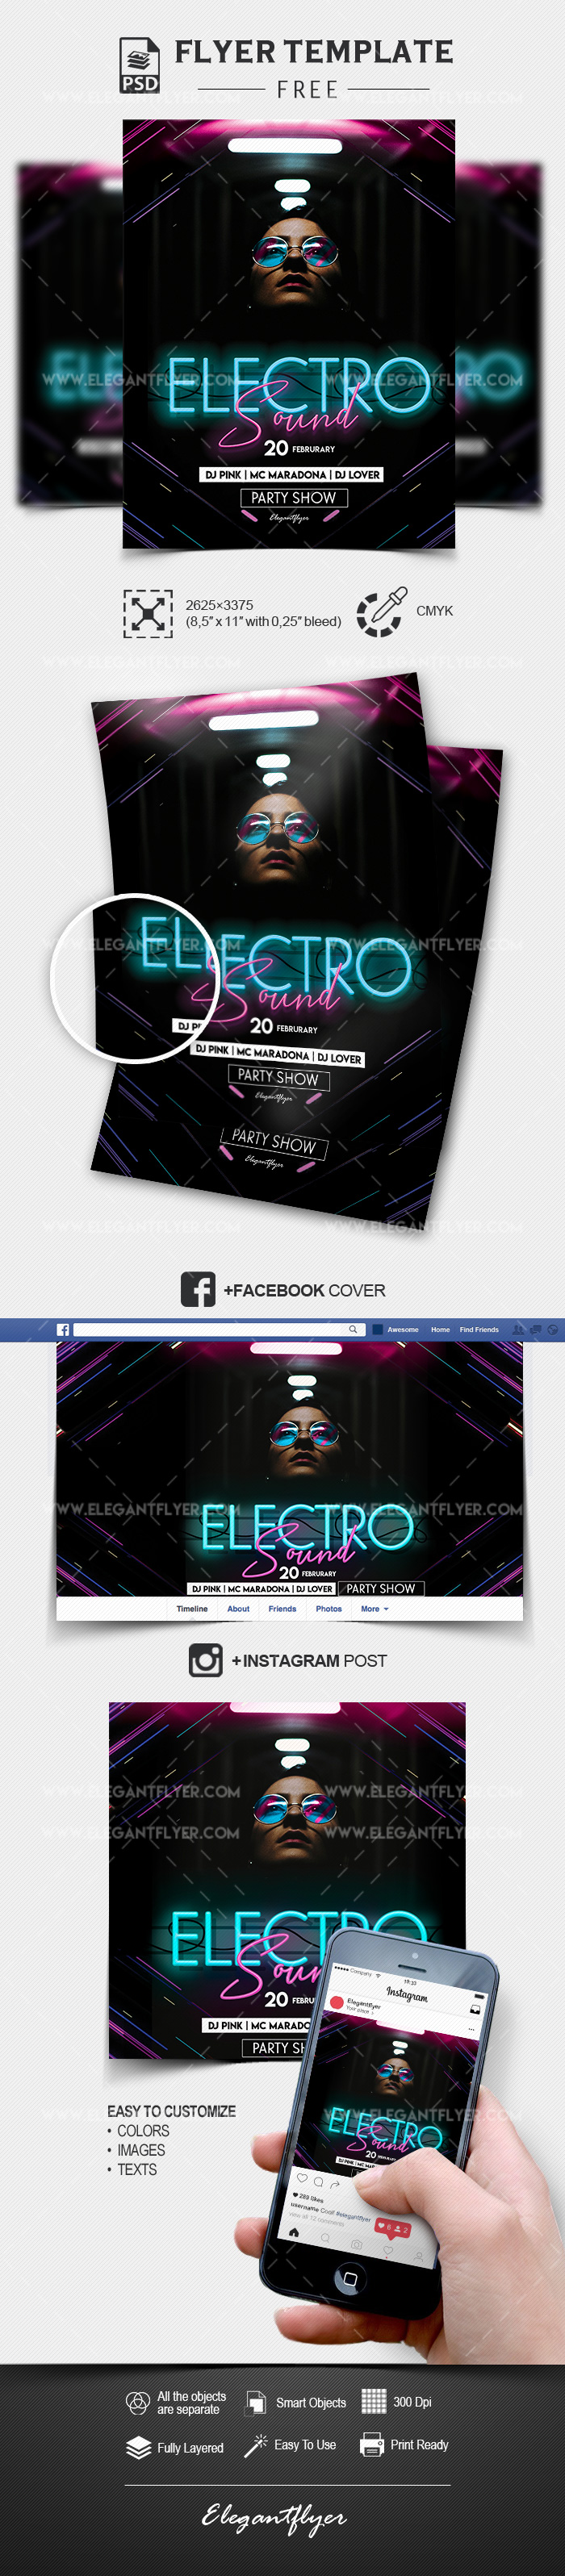 Electro Sound – Free PSD Flyer Template + Facebook Cover + Instagram Post